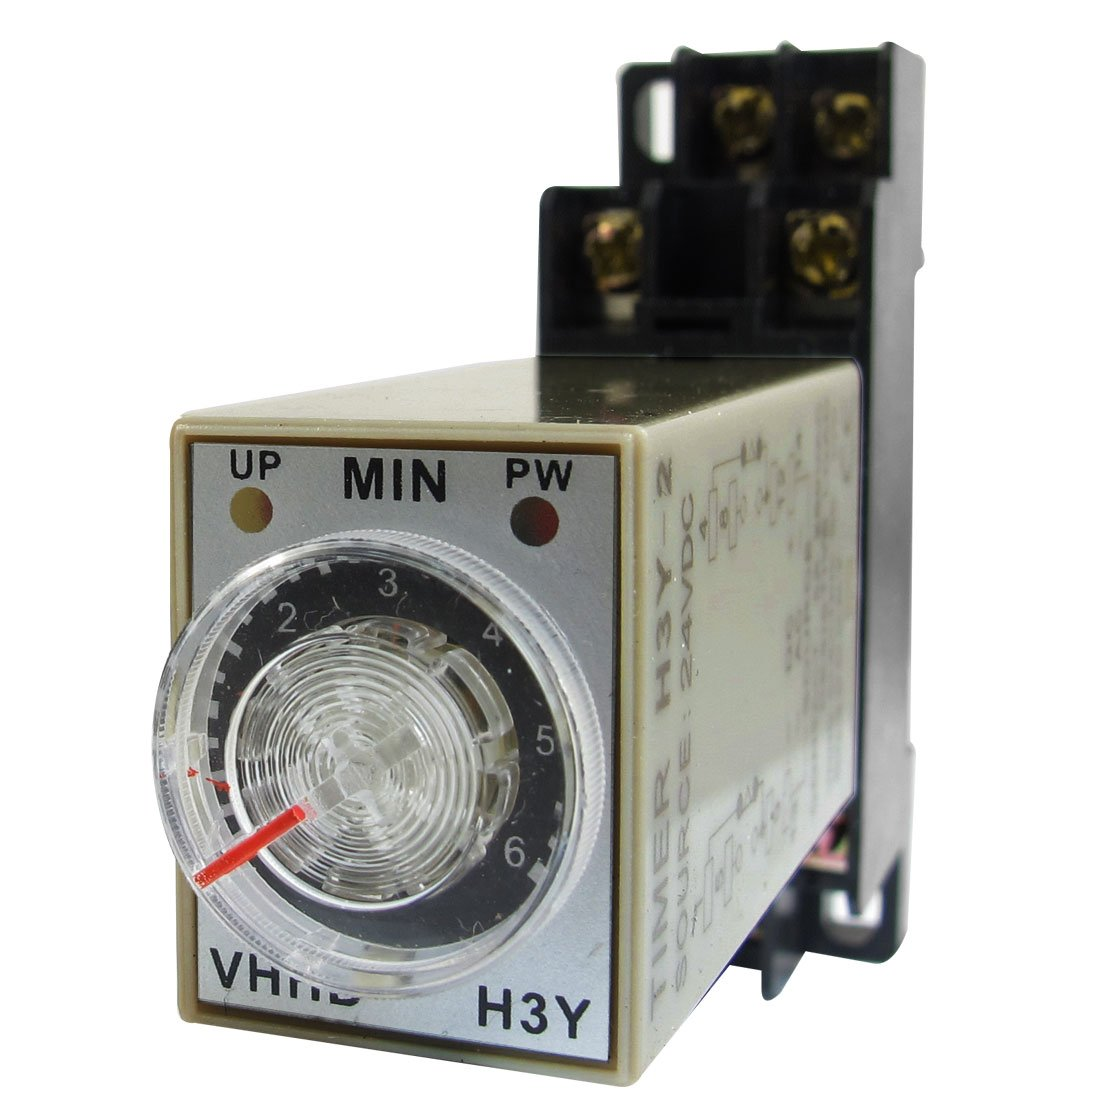 uxcell H3Y-2 On/Up LED Indicator Power Timing Relay 8 Pin 0-6m 6 Min 24V DC + Base